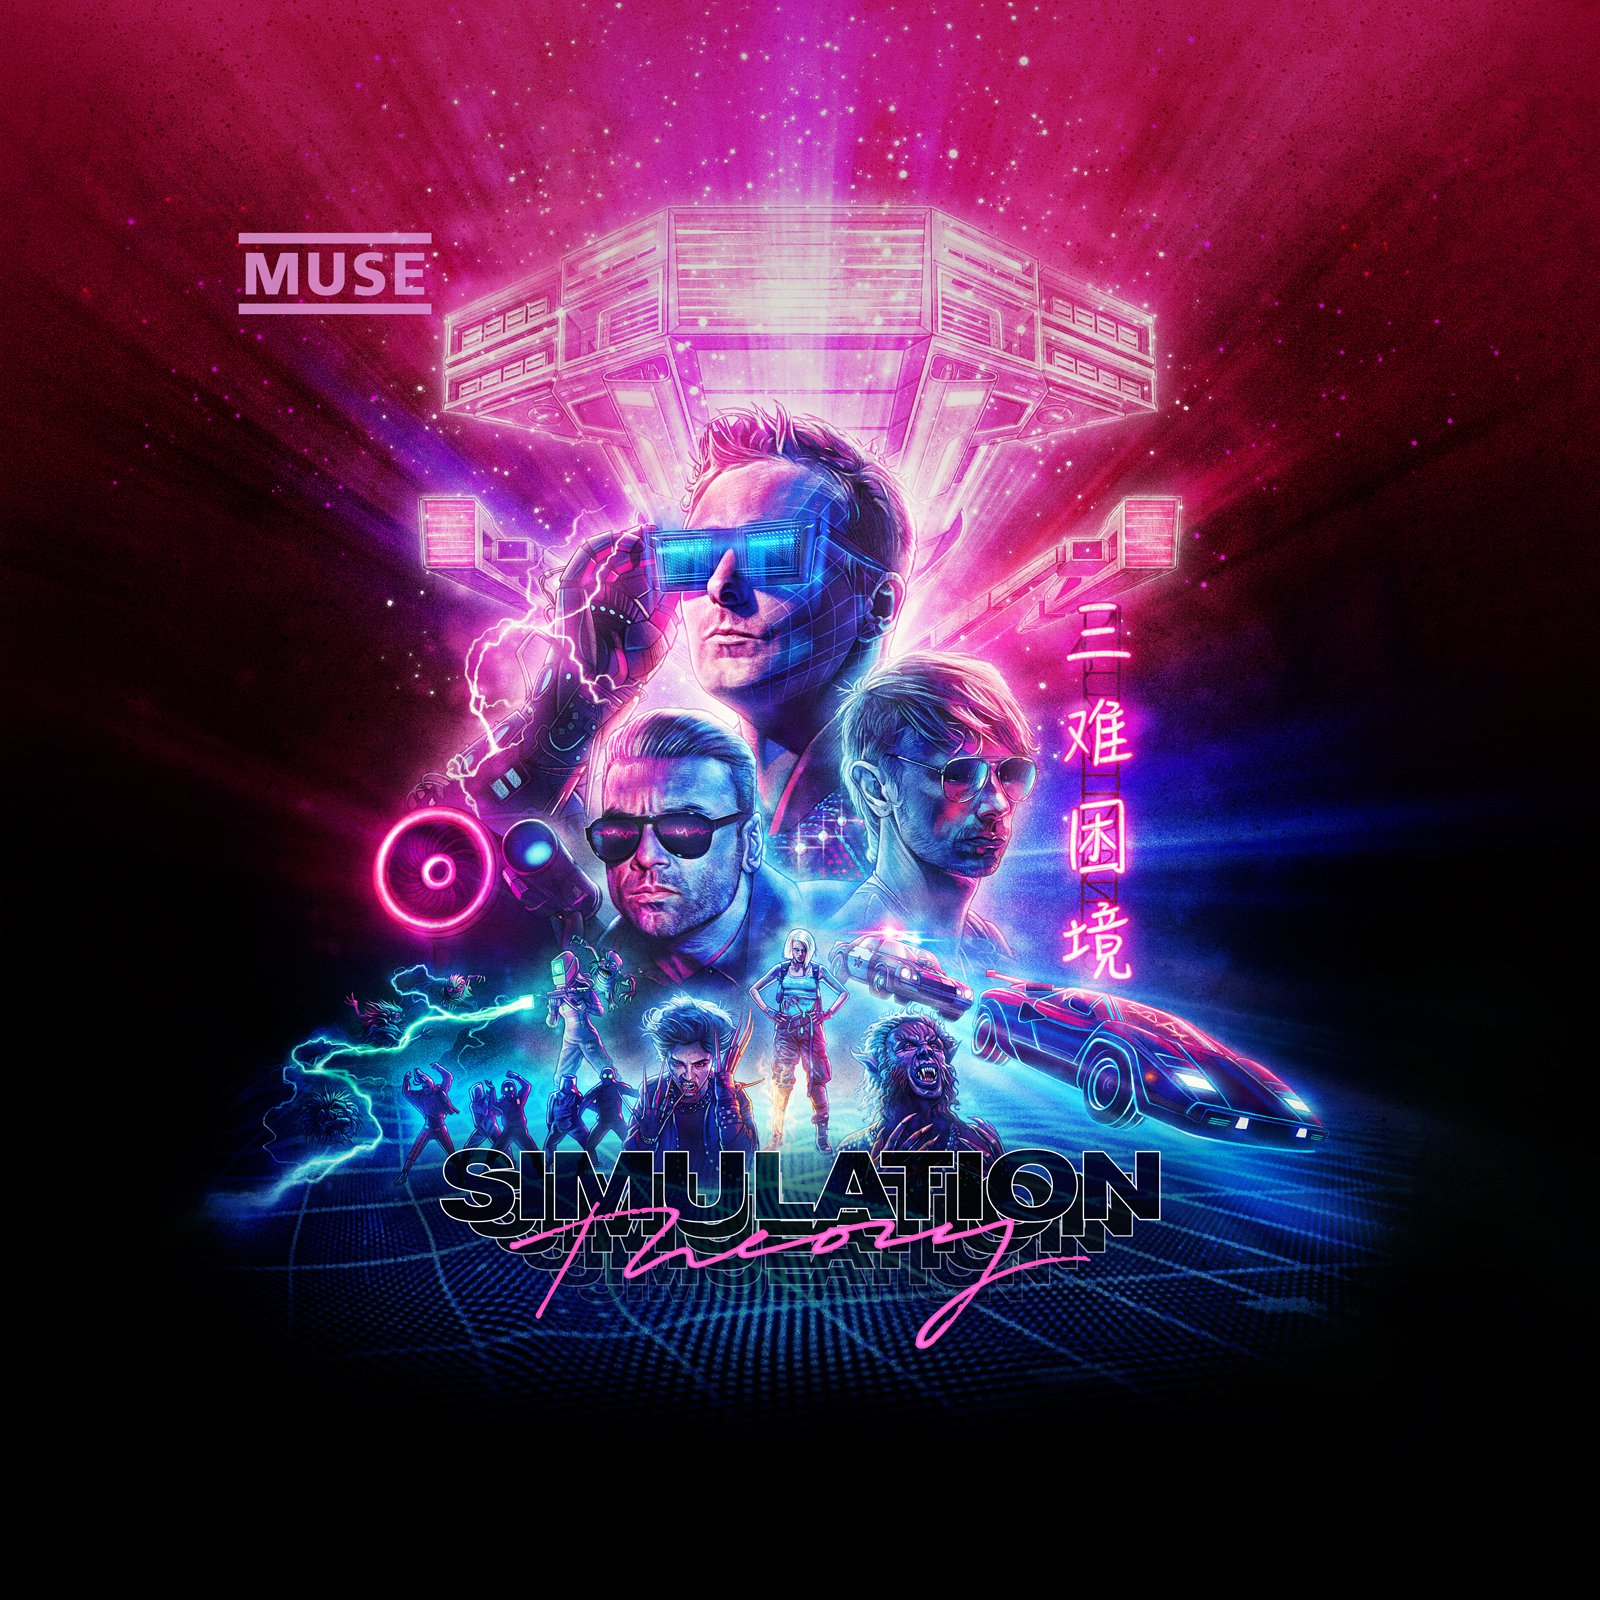 Official album art for Muse's 'Simulation Theory'.